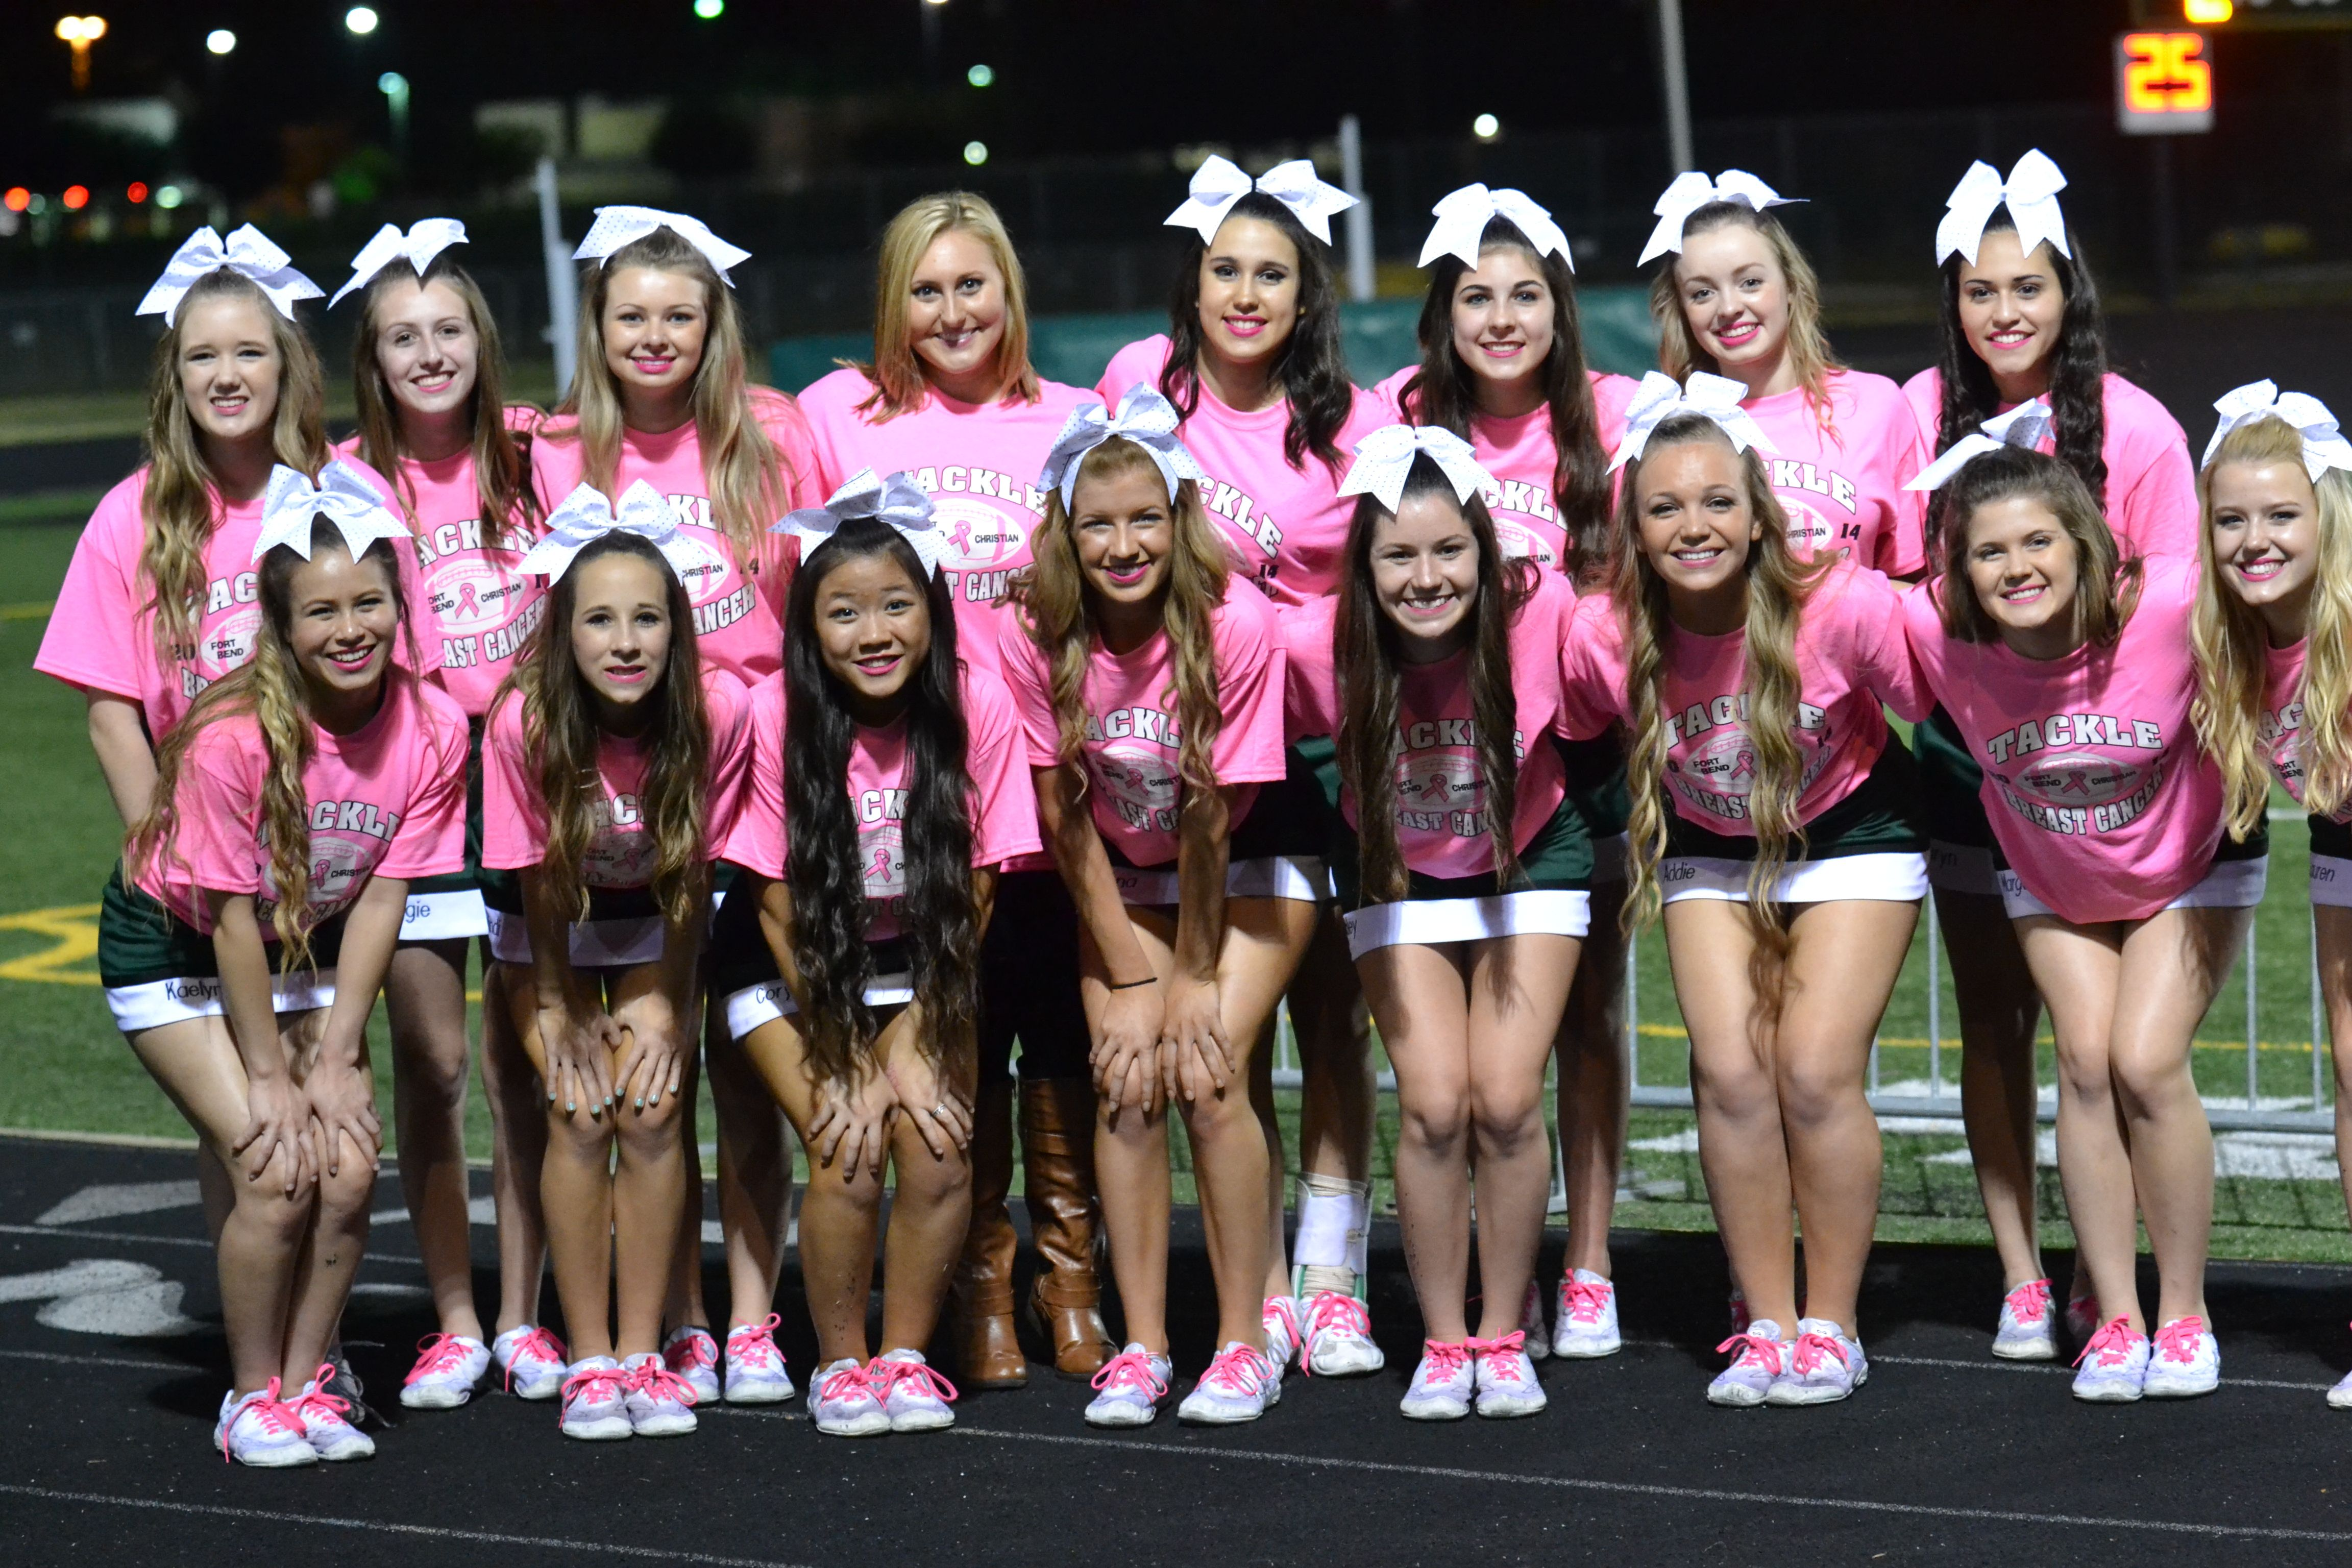 Pin By Madypearl On Cheer For A Cure In 2020 Pink Out School Spirit Outfit Football